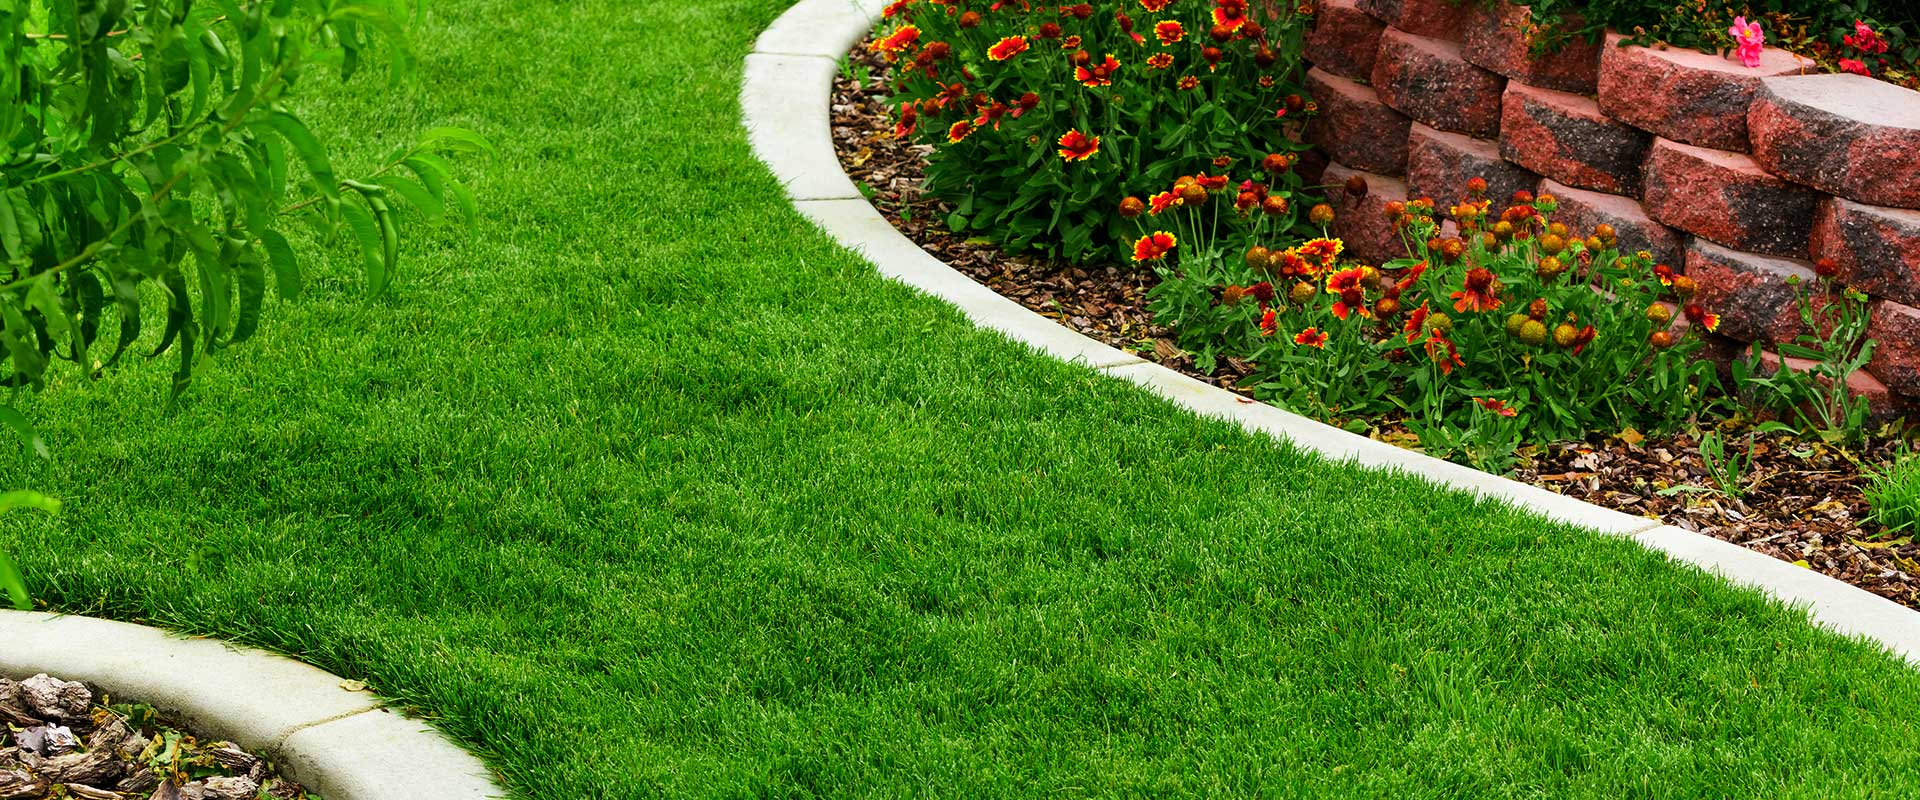 Do You Want Your Lawn Care To Thrive?